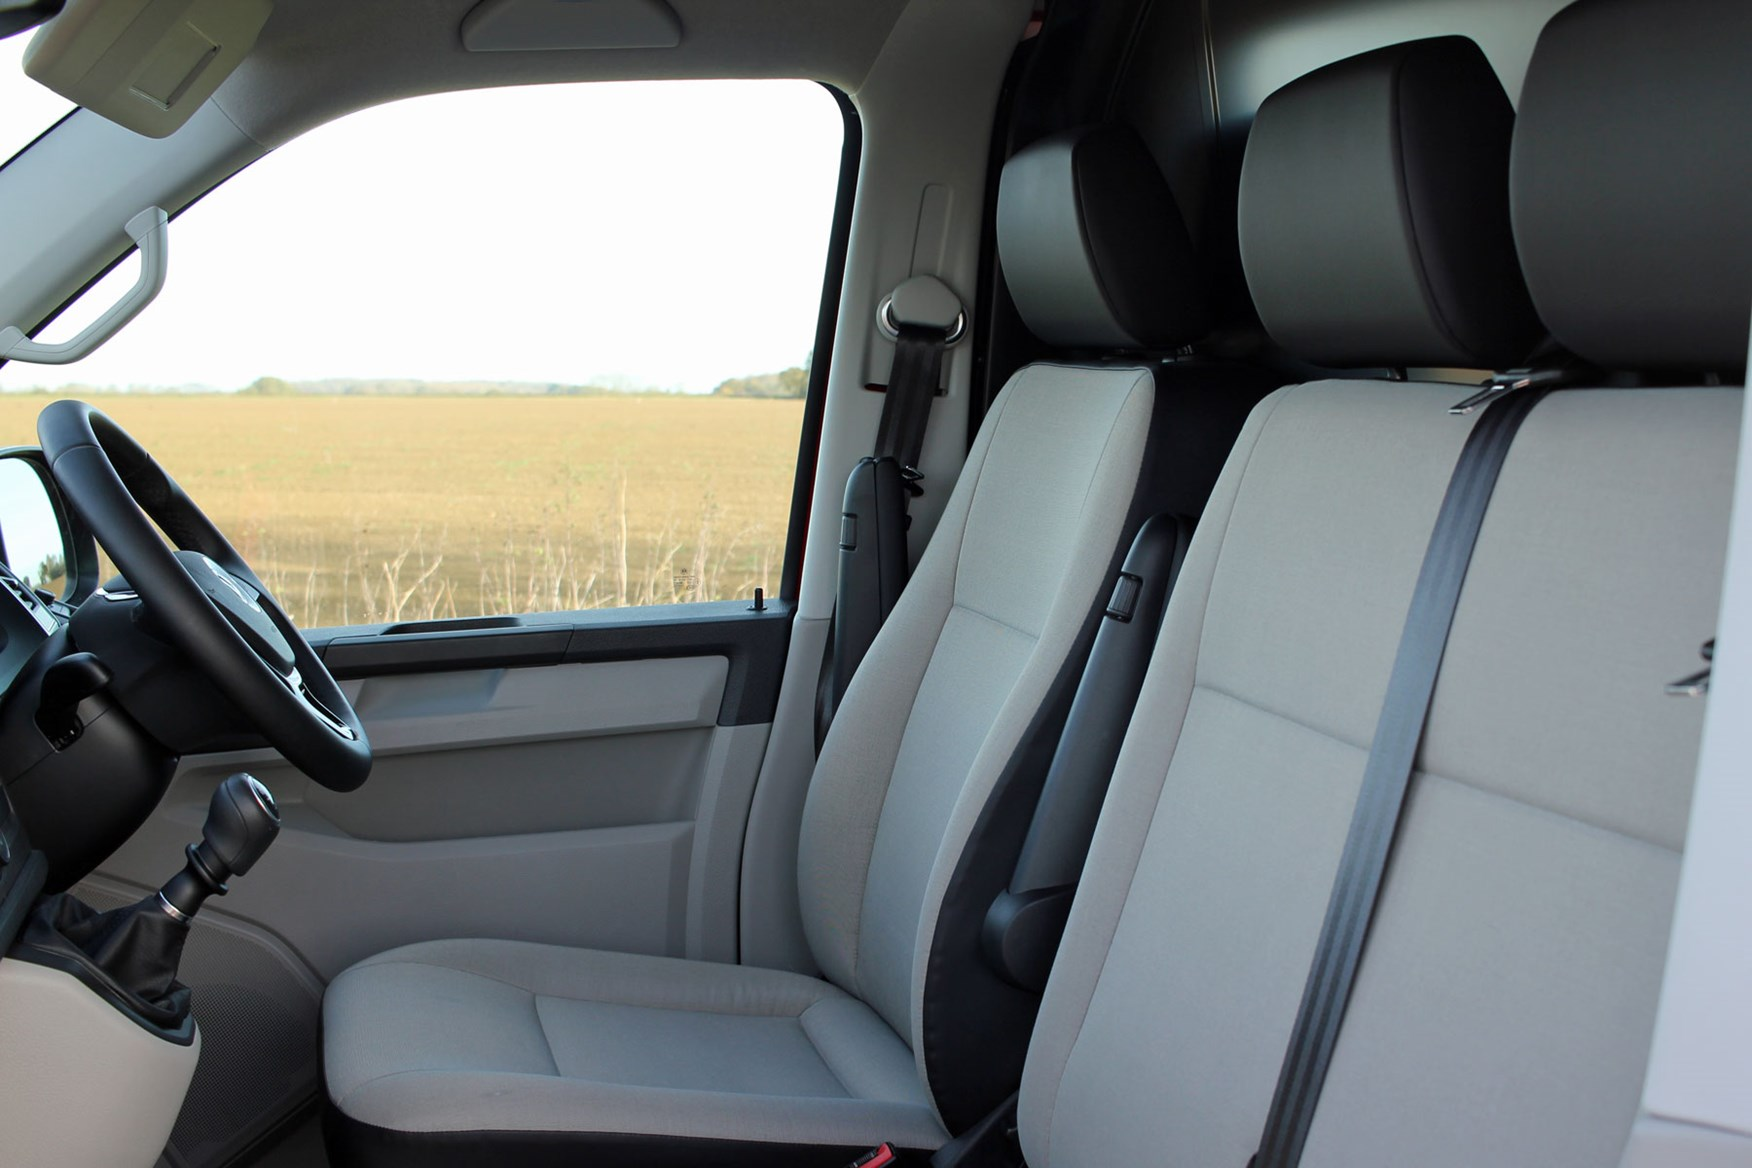 VW Transporter T6 TSI 150 review - cab interior, driving experience